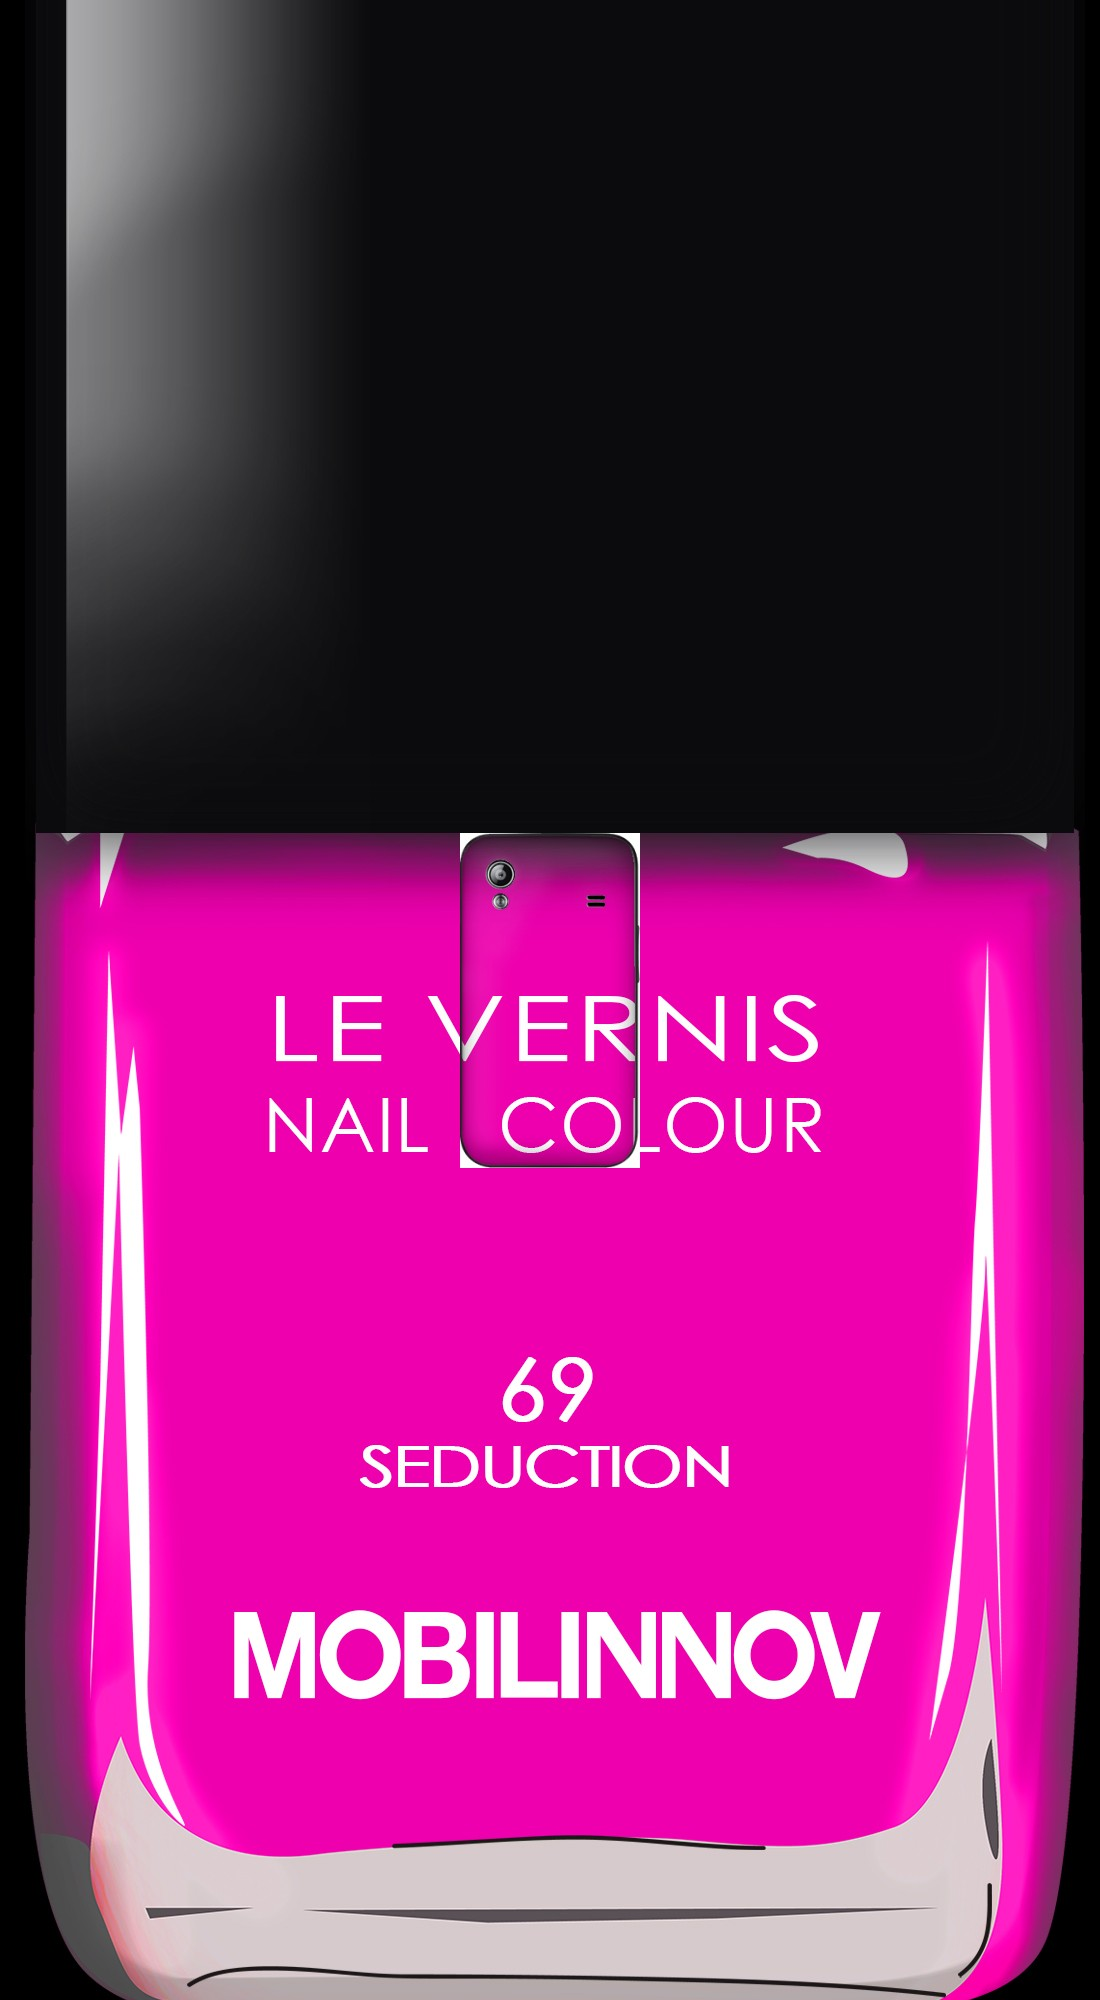 housse Flacon Vernis 69 Seduction a clapet pour Samsung Galaxy Ace S5830